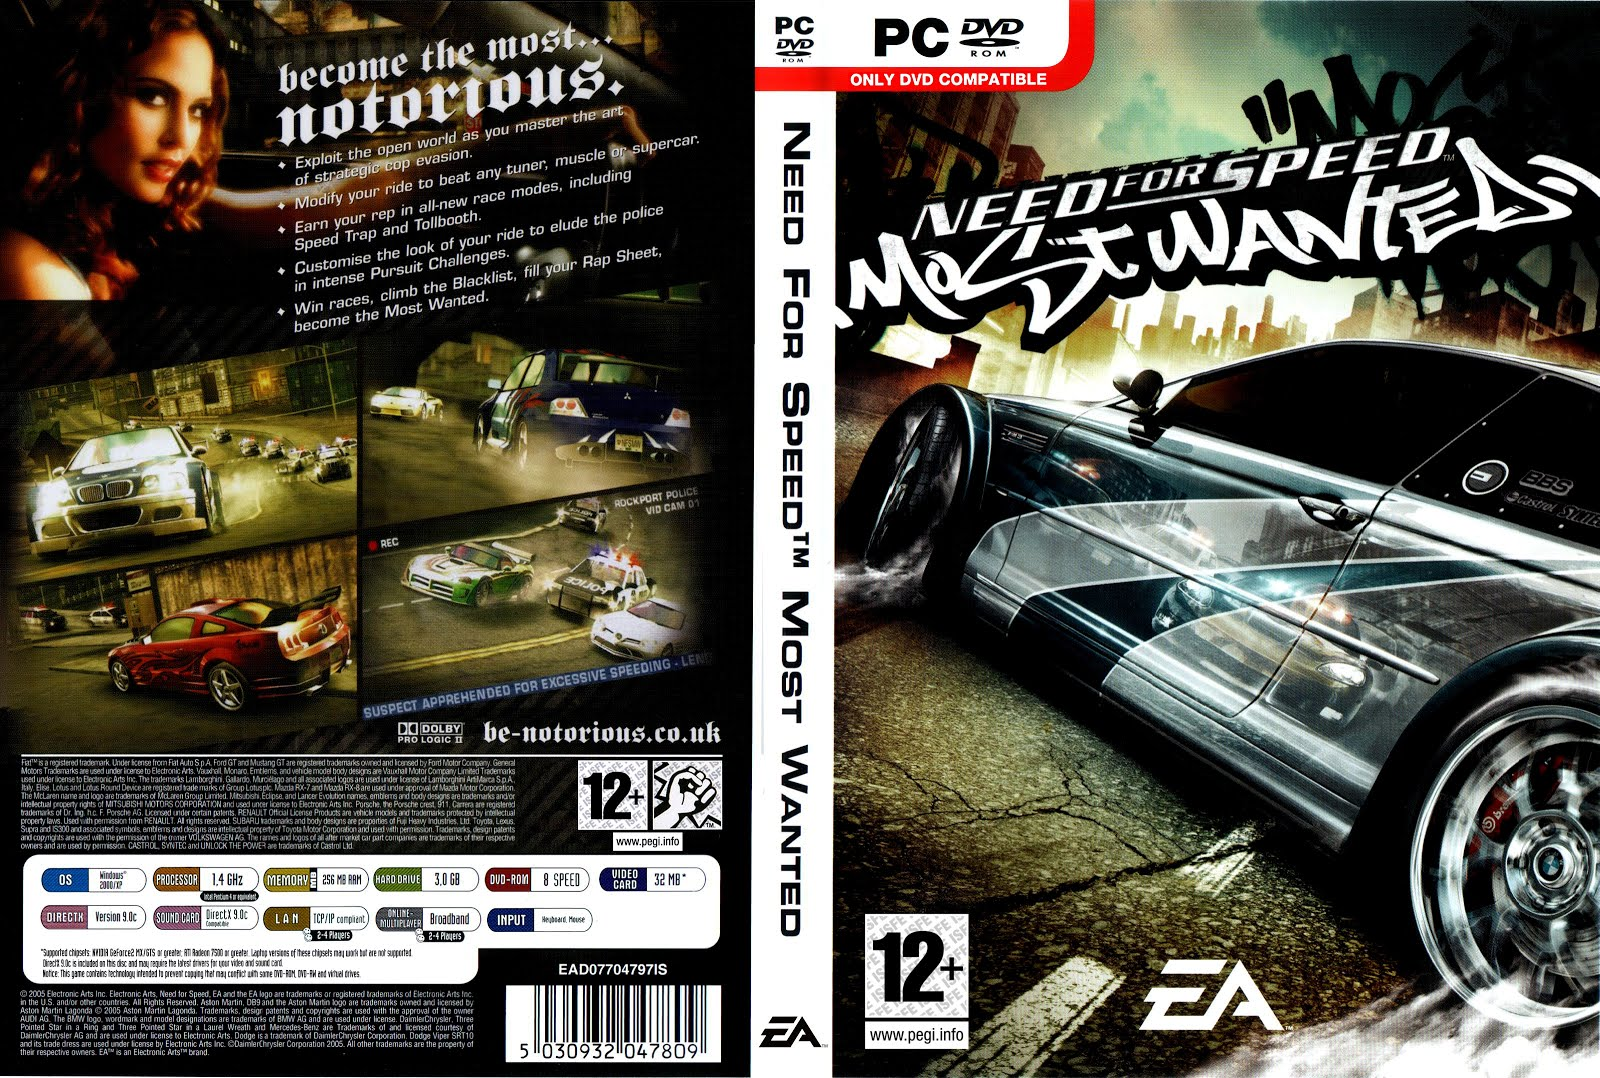 Need for speed most wanted 2005 pc download full version